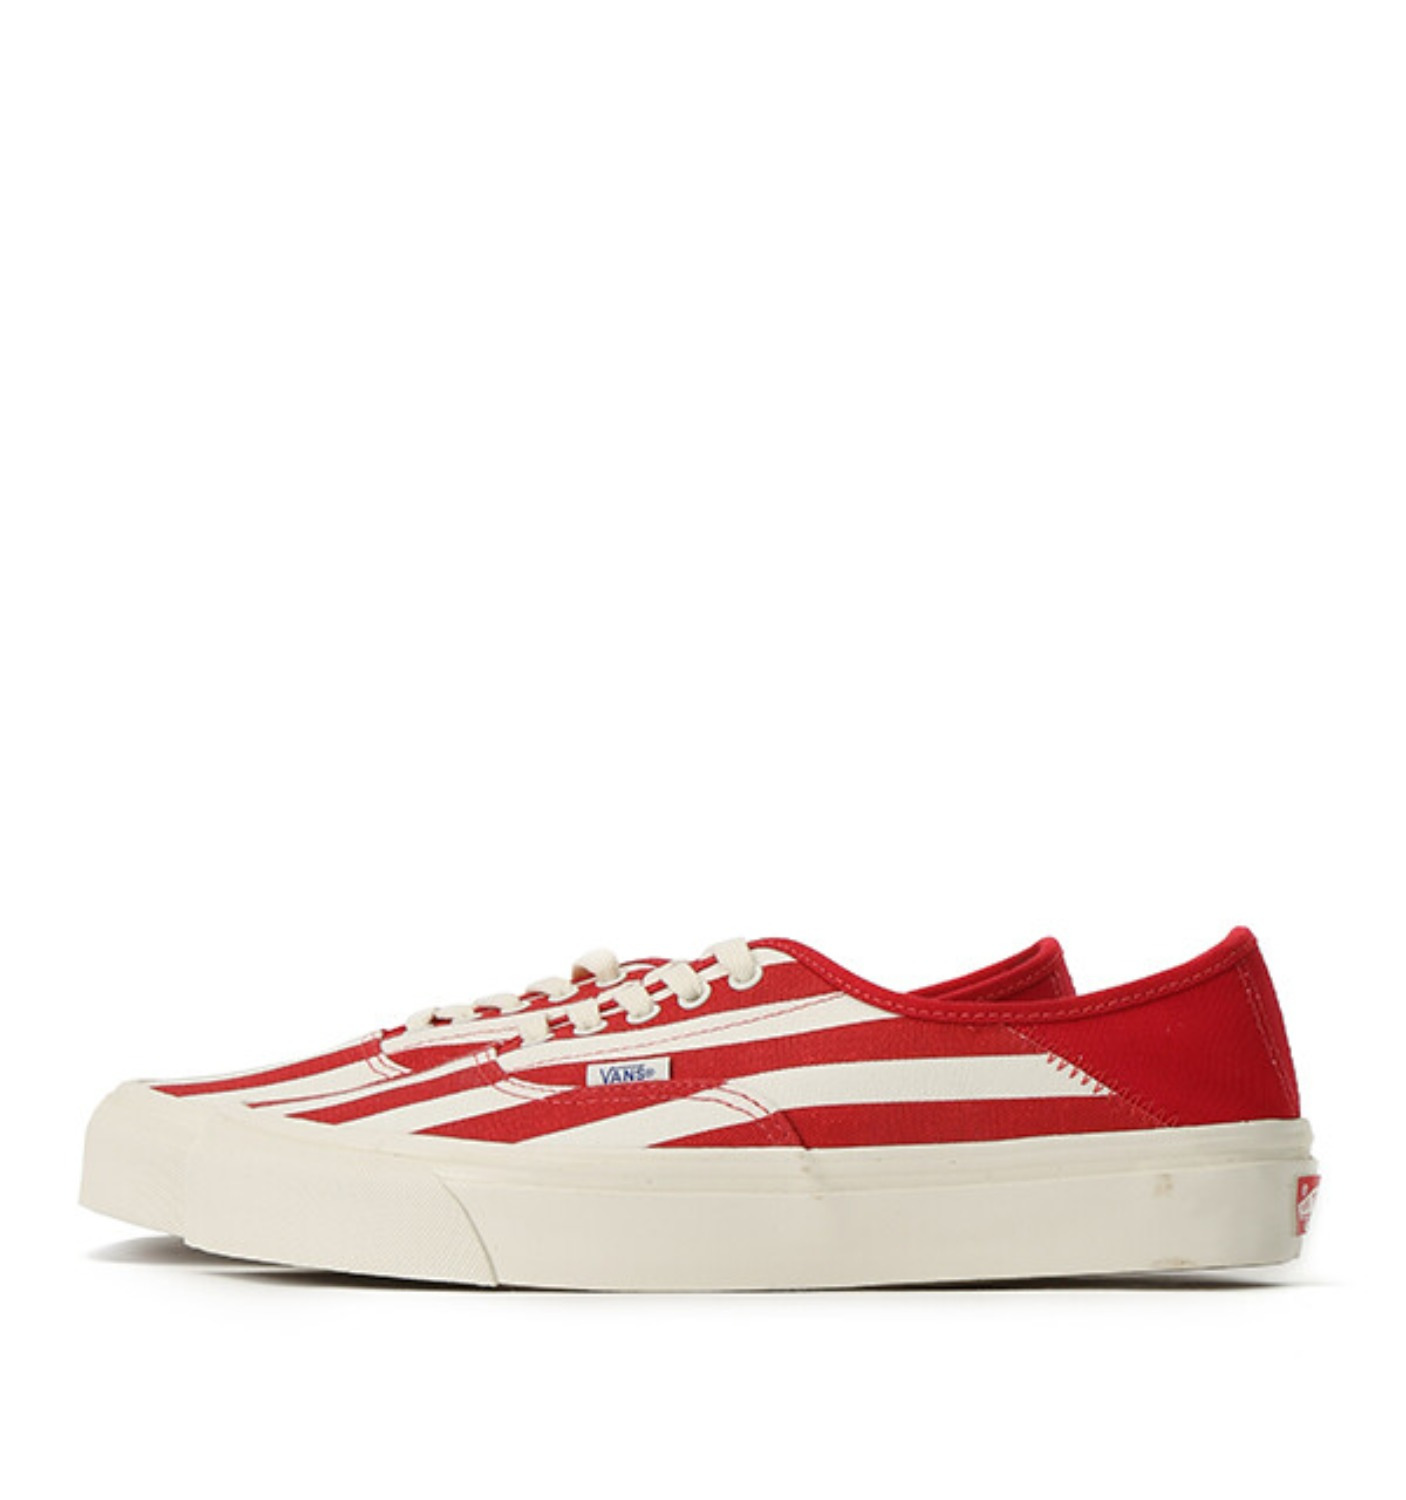 OG STYLE 43 DX CANVAS STRIPE RACING RED